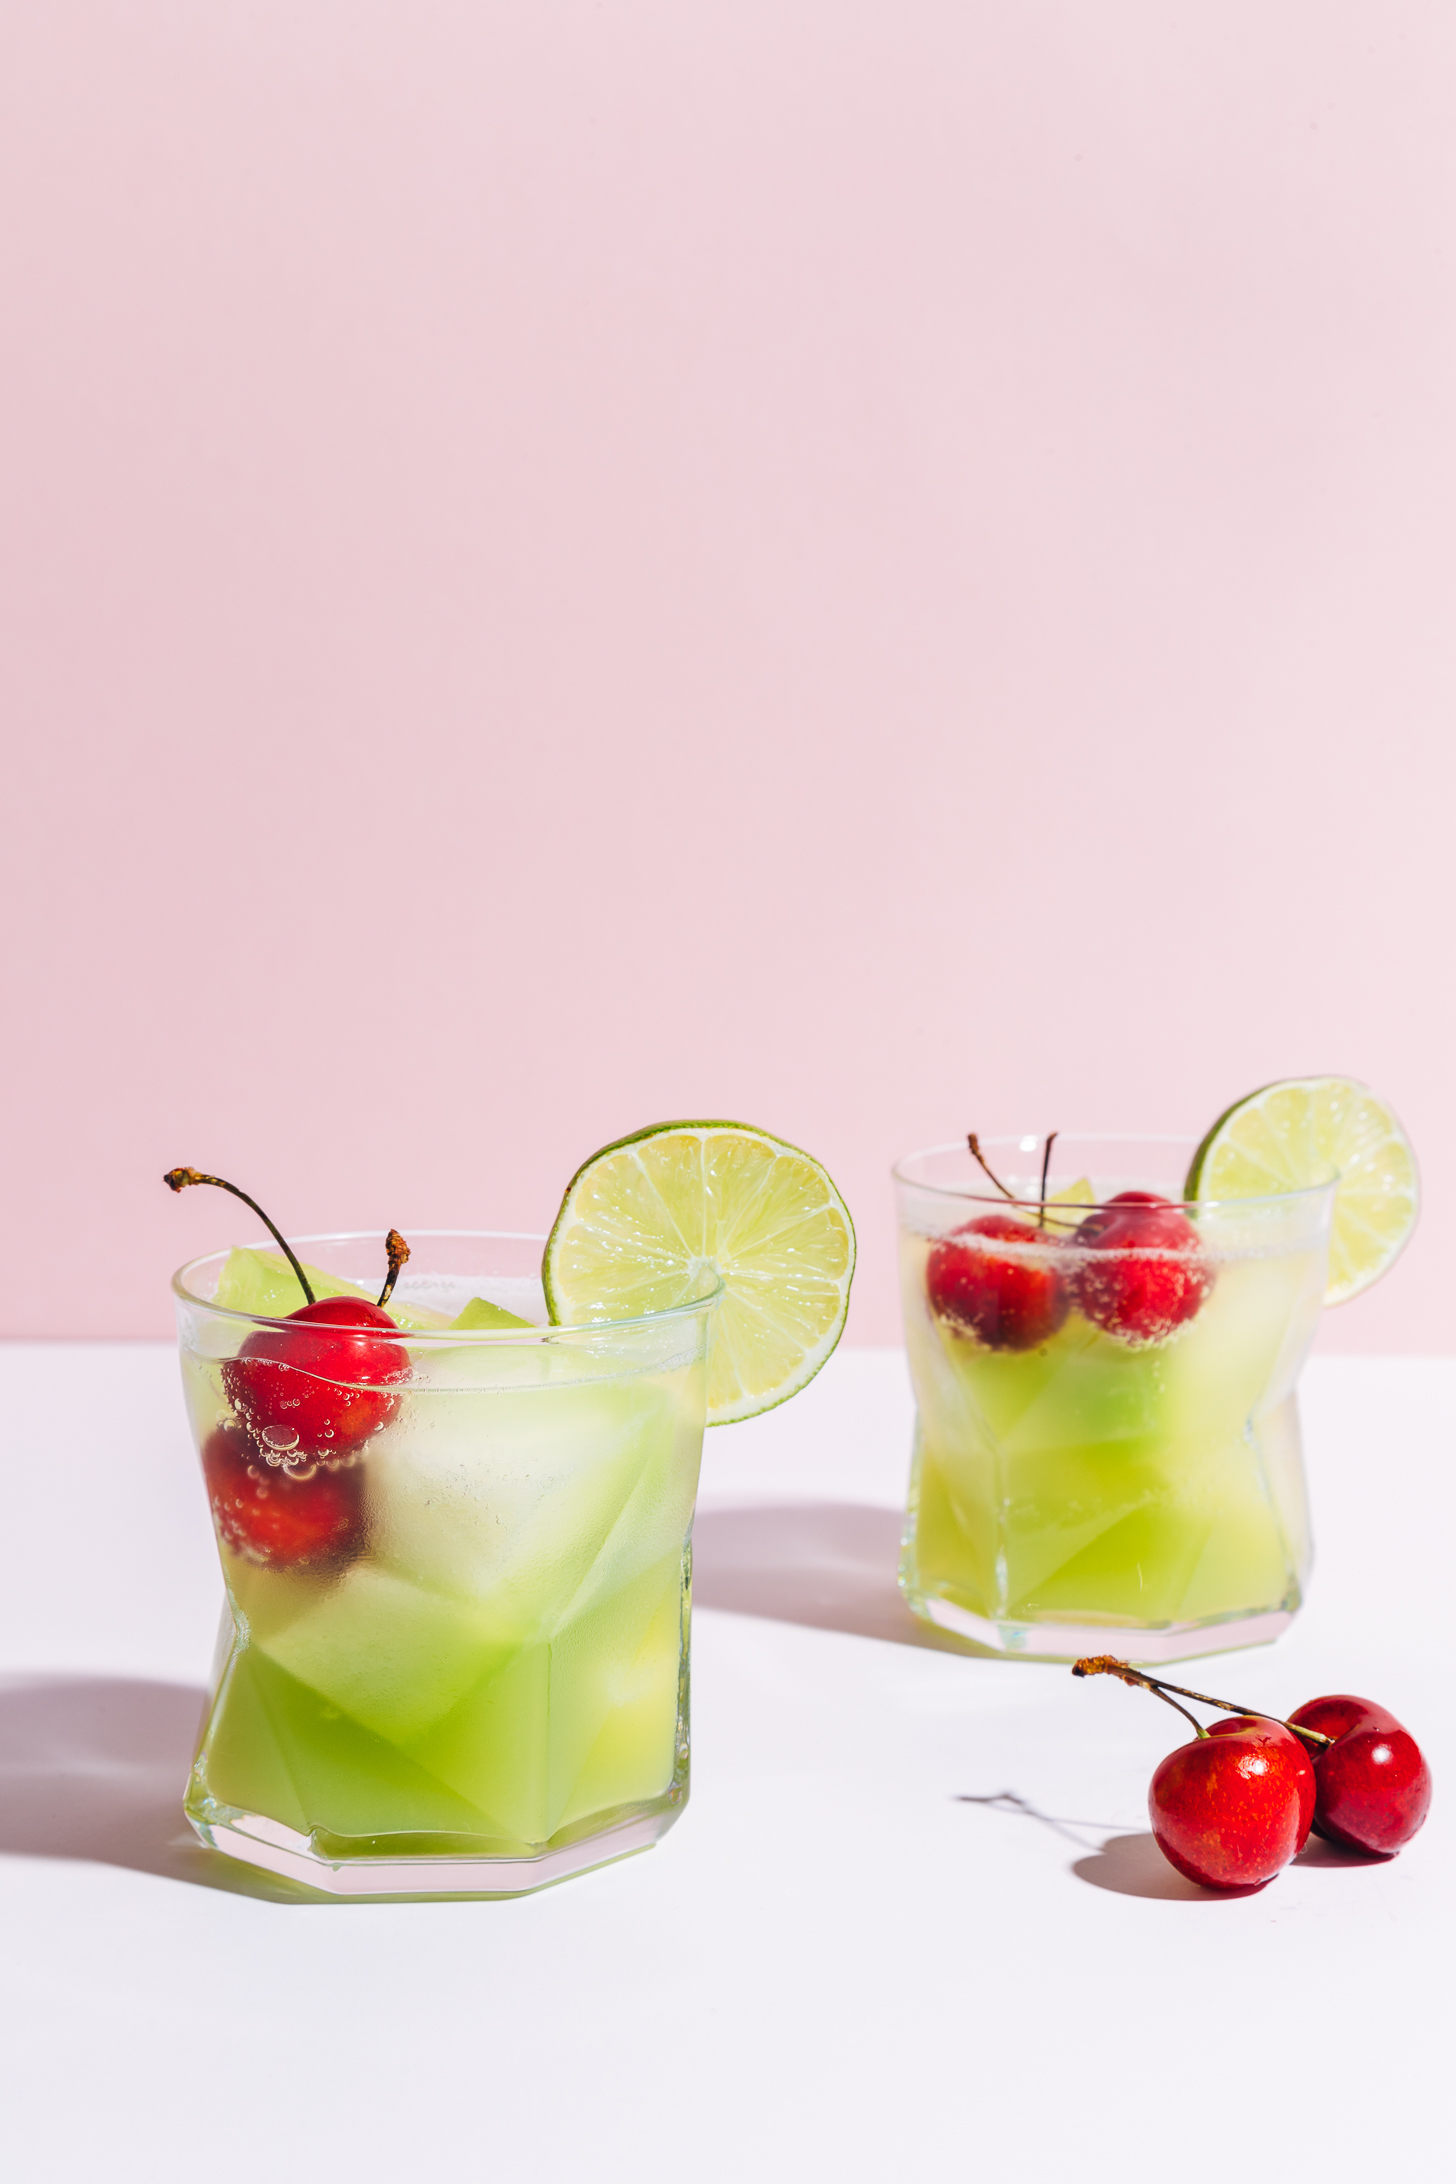 Two glasses of our Citrus and Melon Spritzer recipe for a refreshing alcohol-free summer drink